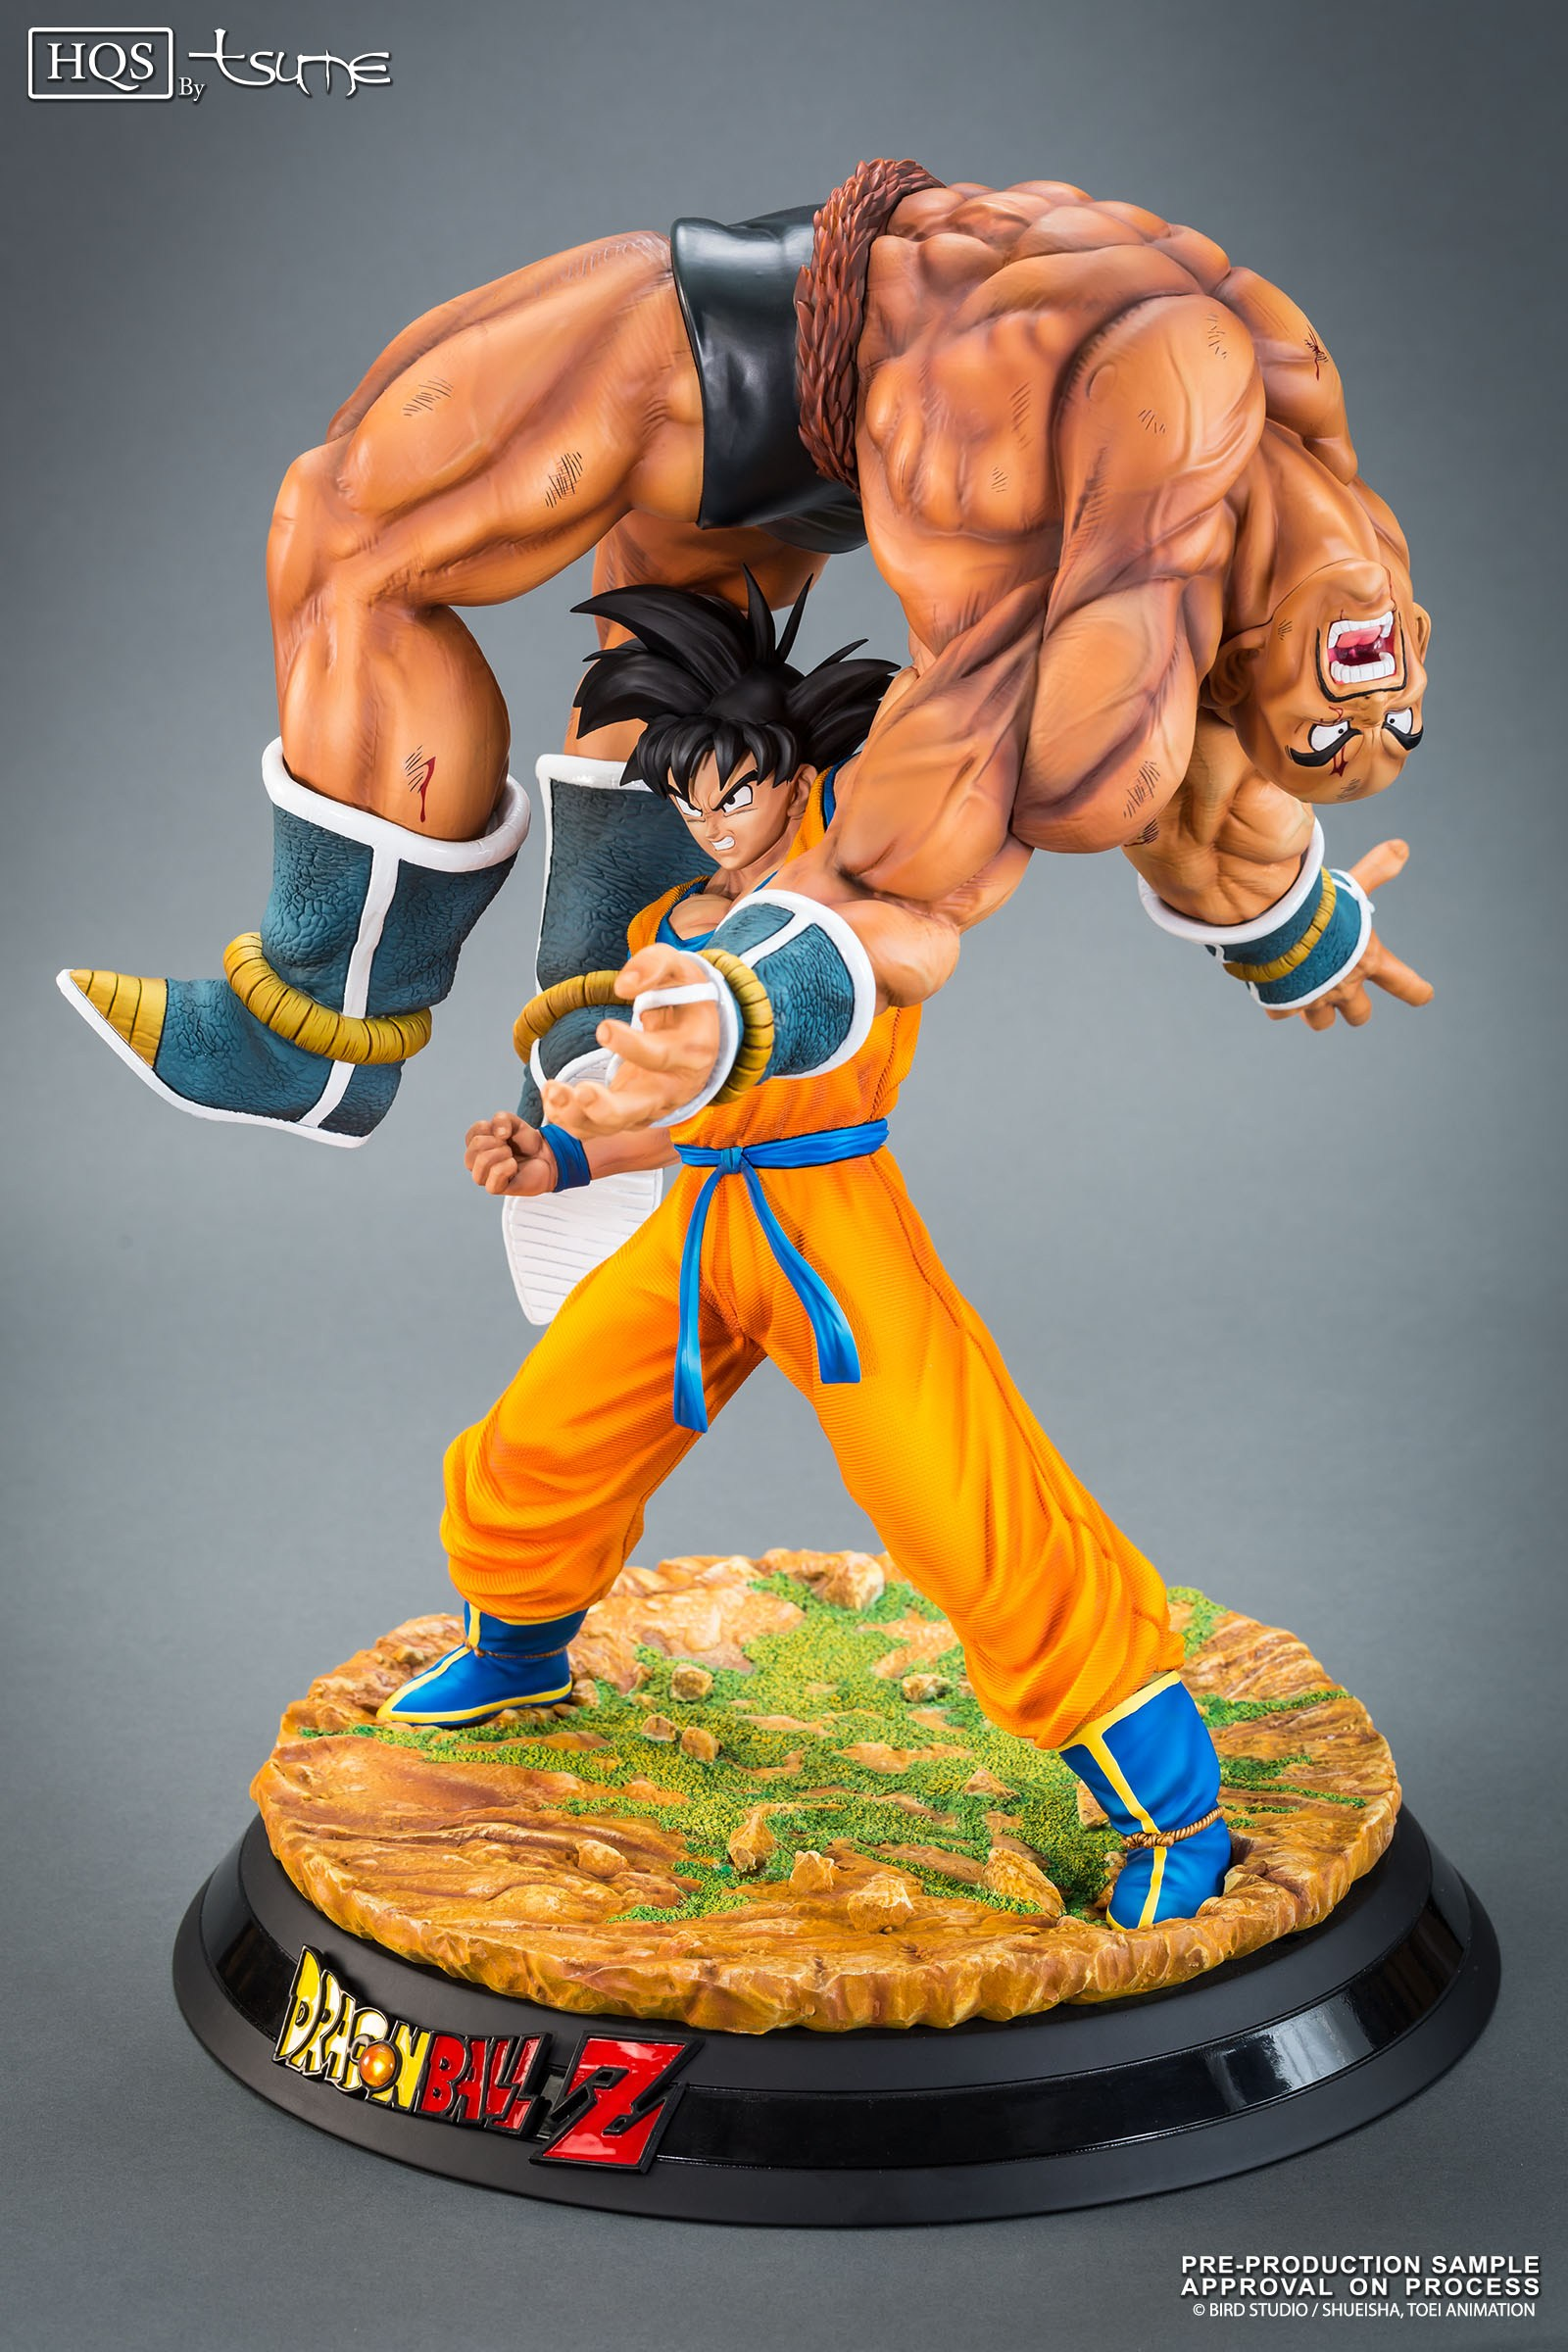 Tsume Art Dragonball Z The Quiet Wrath Of Son Goku HQS